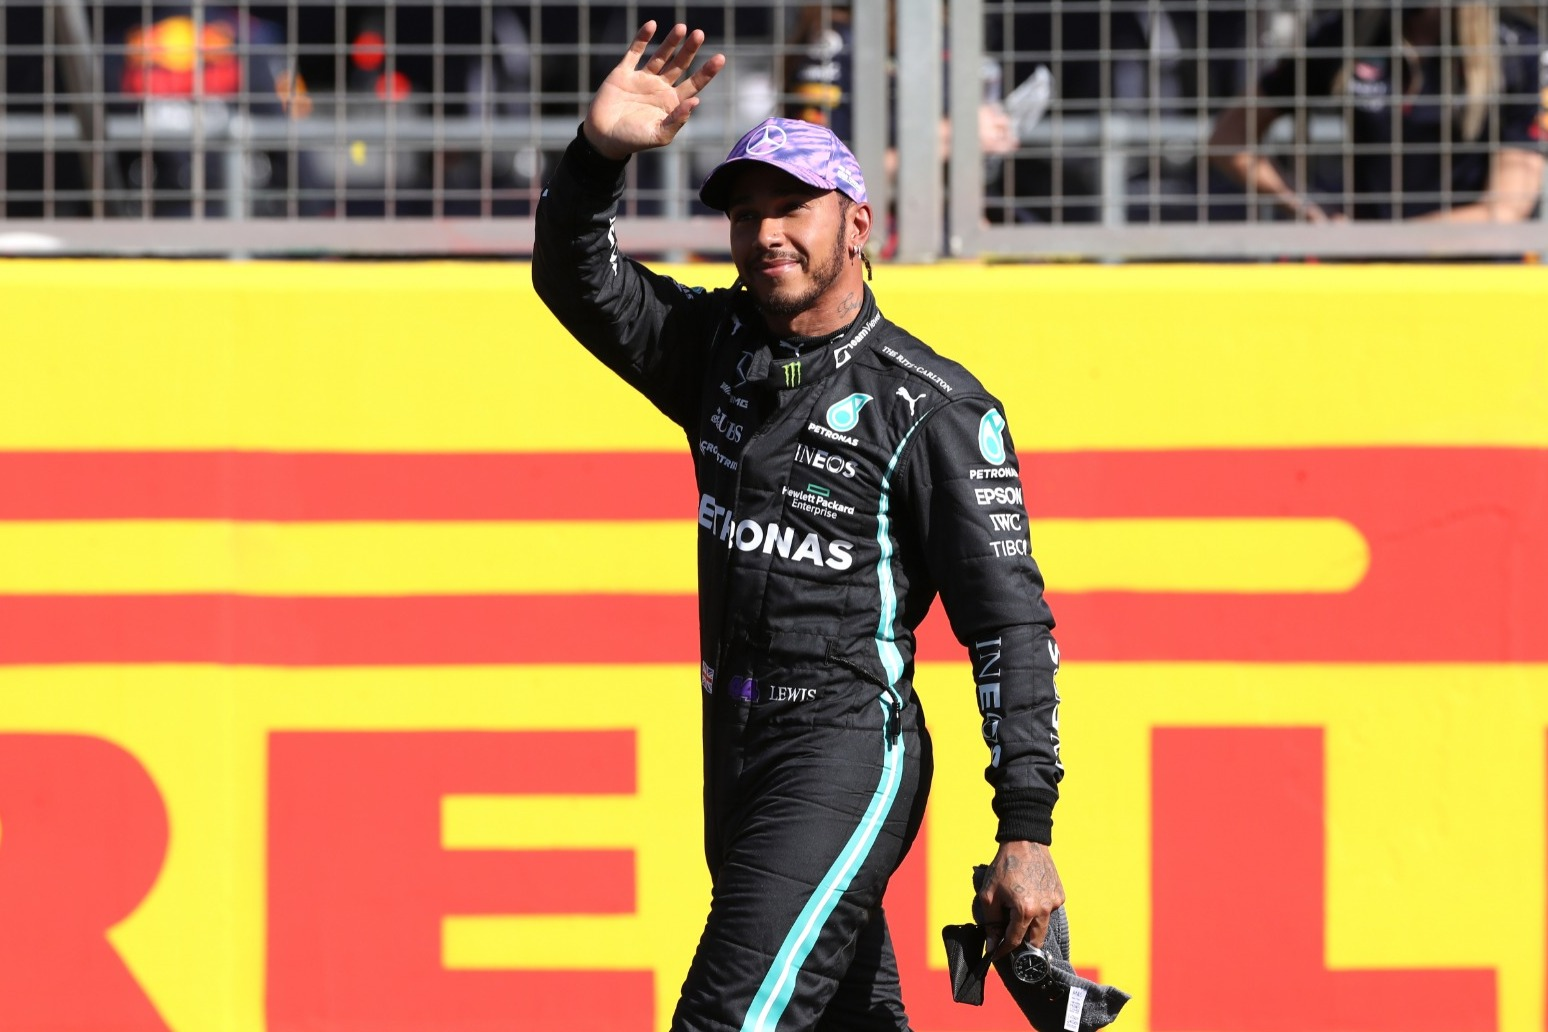 Lewis Hamilton wishes he could restart F1's maiden Sprint following poor getaway